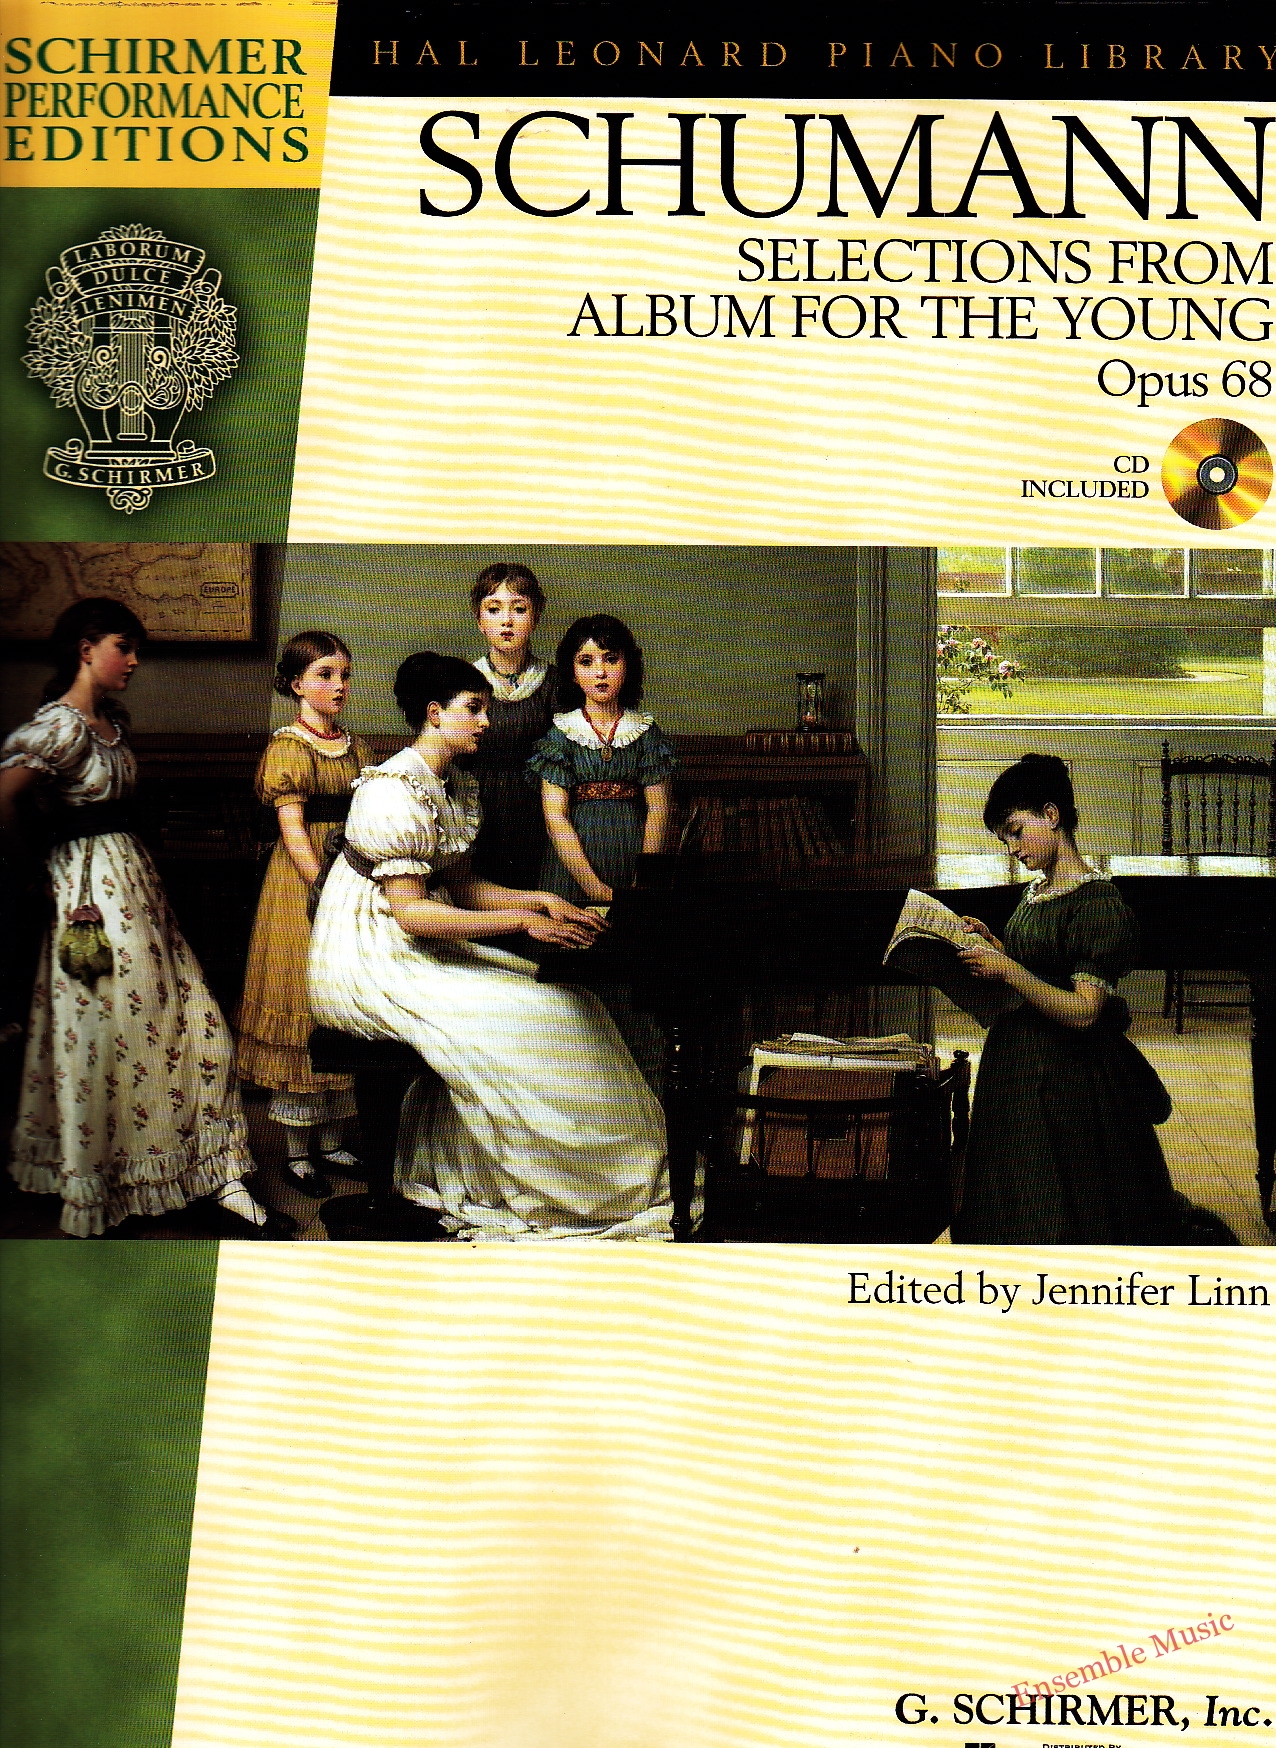 Schumann Selections From Album For The Young Opus 68